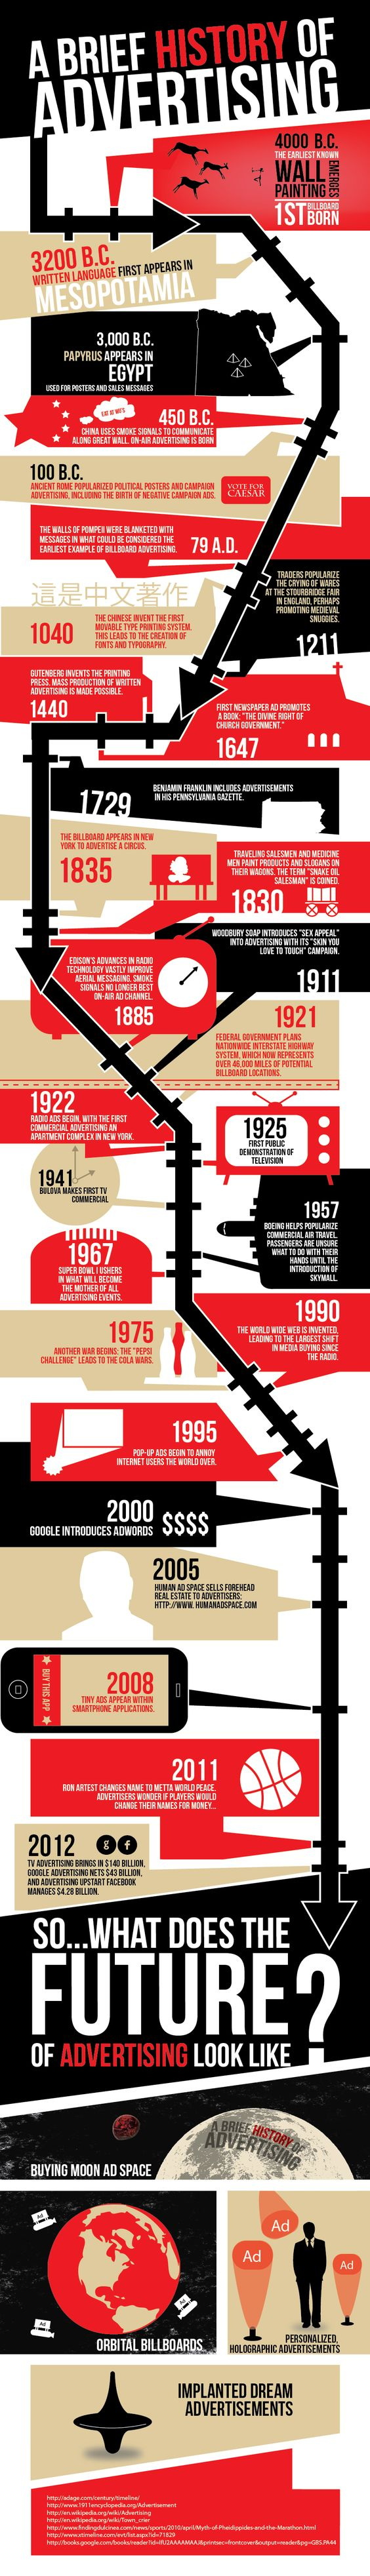 A Brief History of Advertising #infographic #timeline   Timeline ...